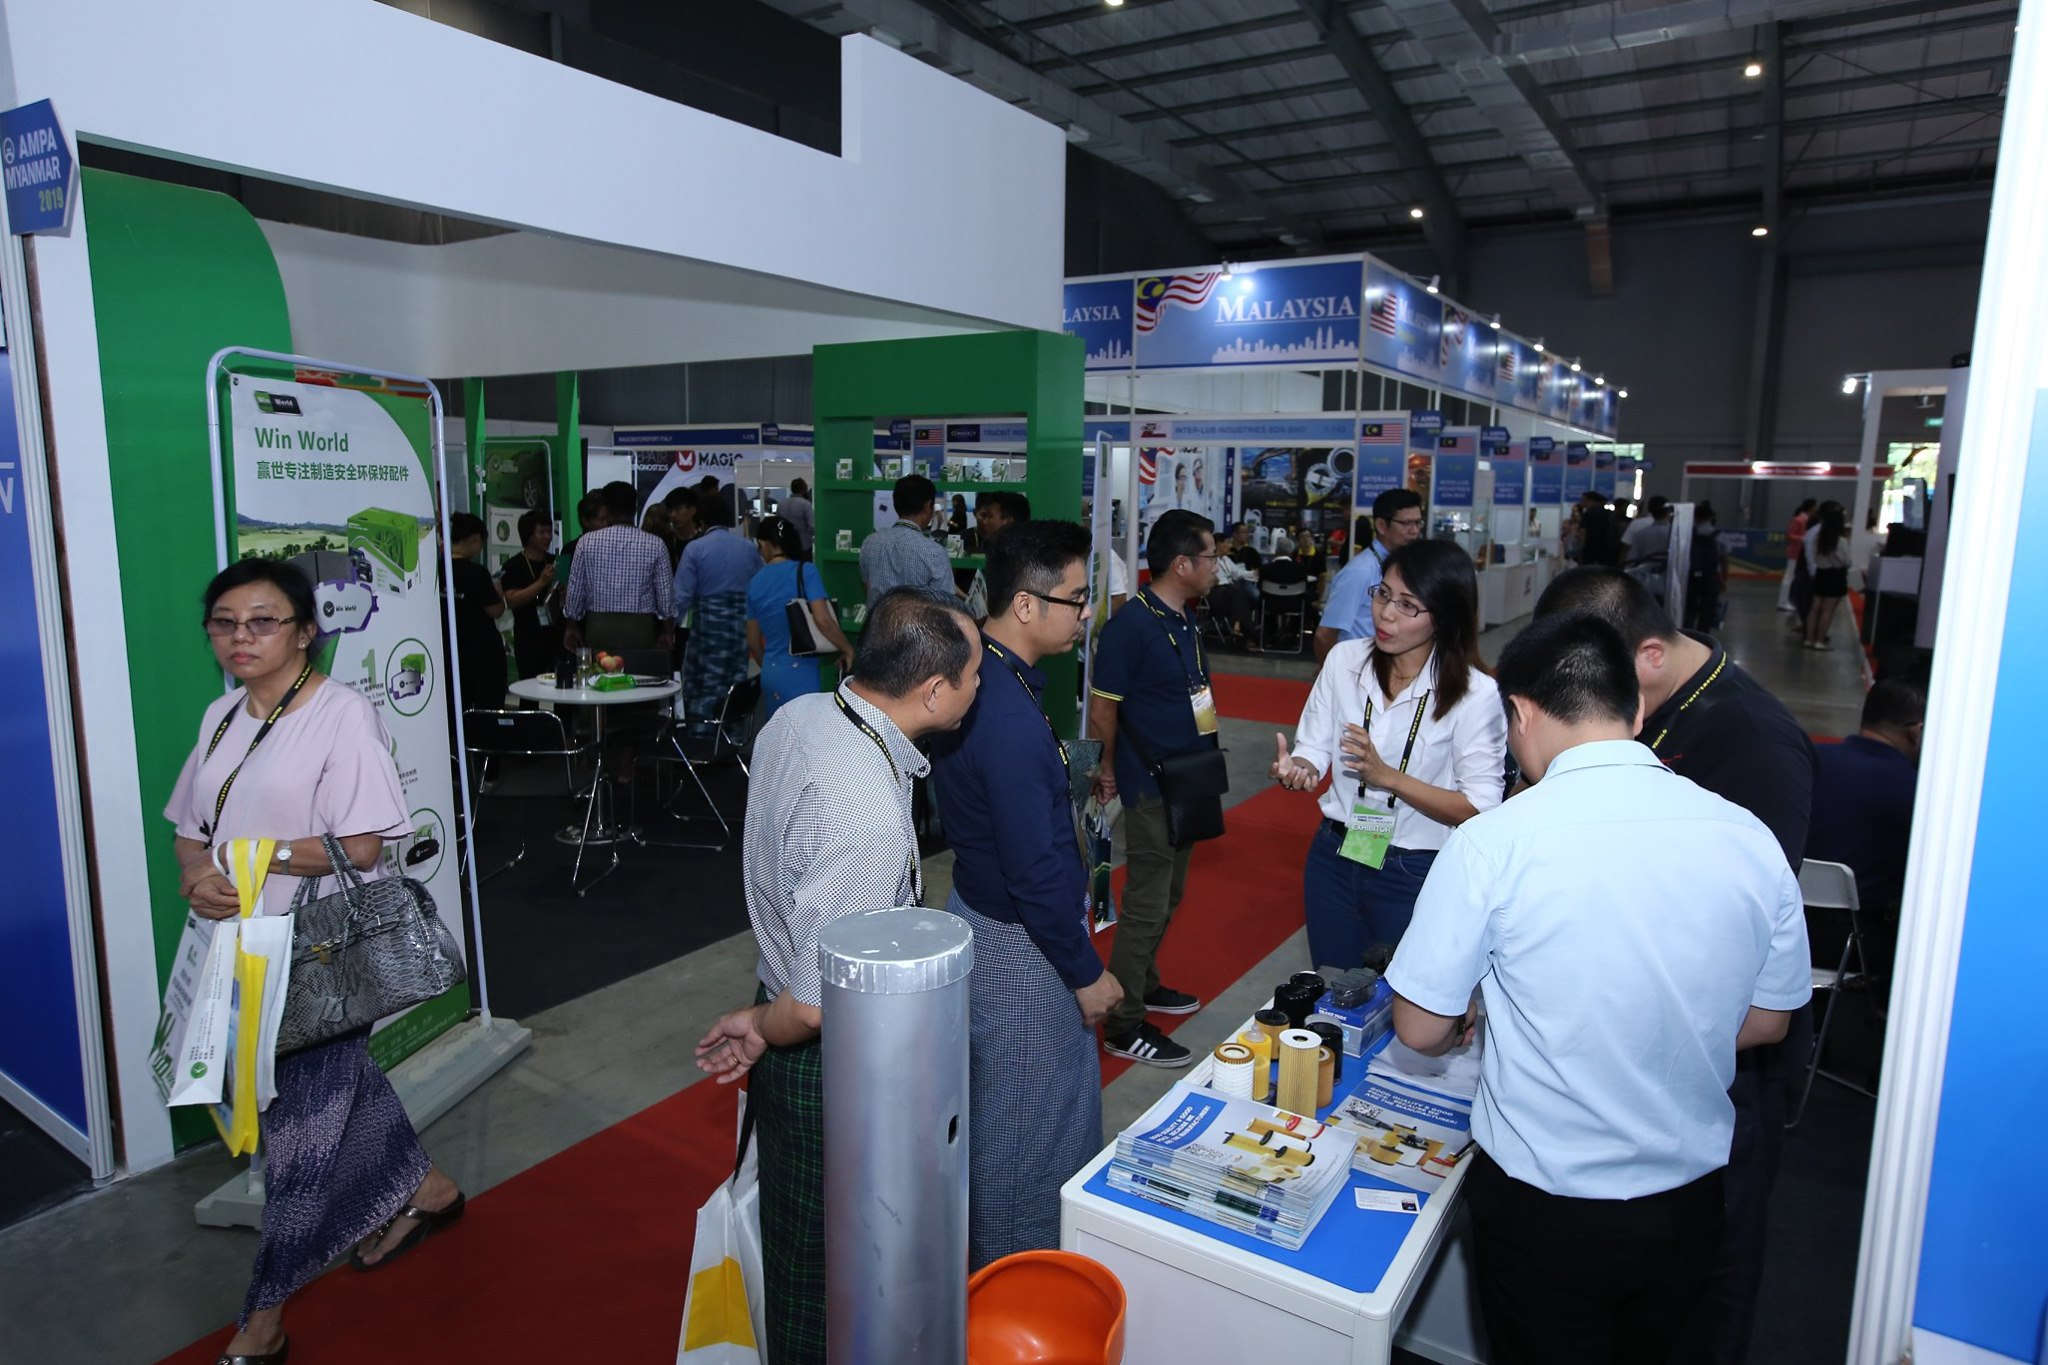 https://storage.googleapis.com/www.taiwantradeshow.com.tw/model/photo/EA/2019/PH00037762-name.jpg